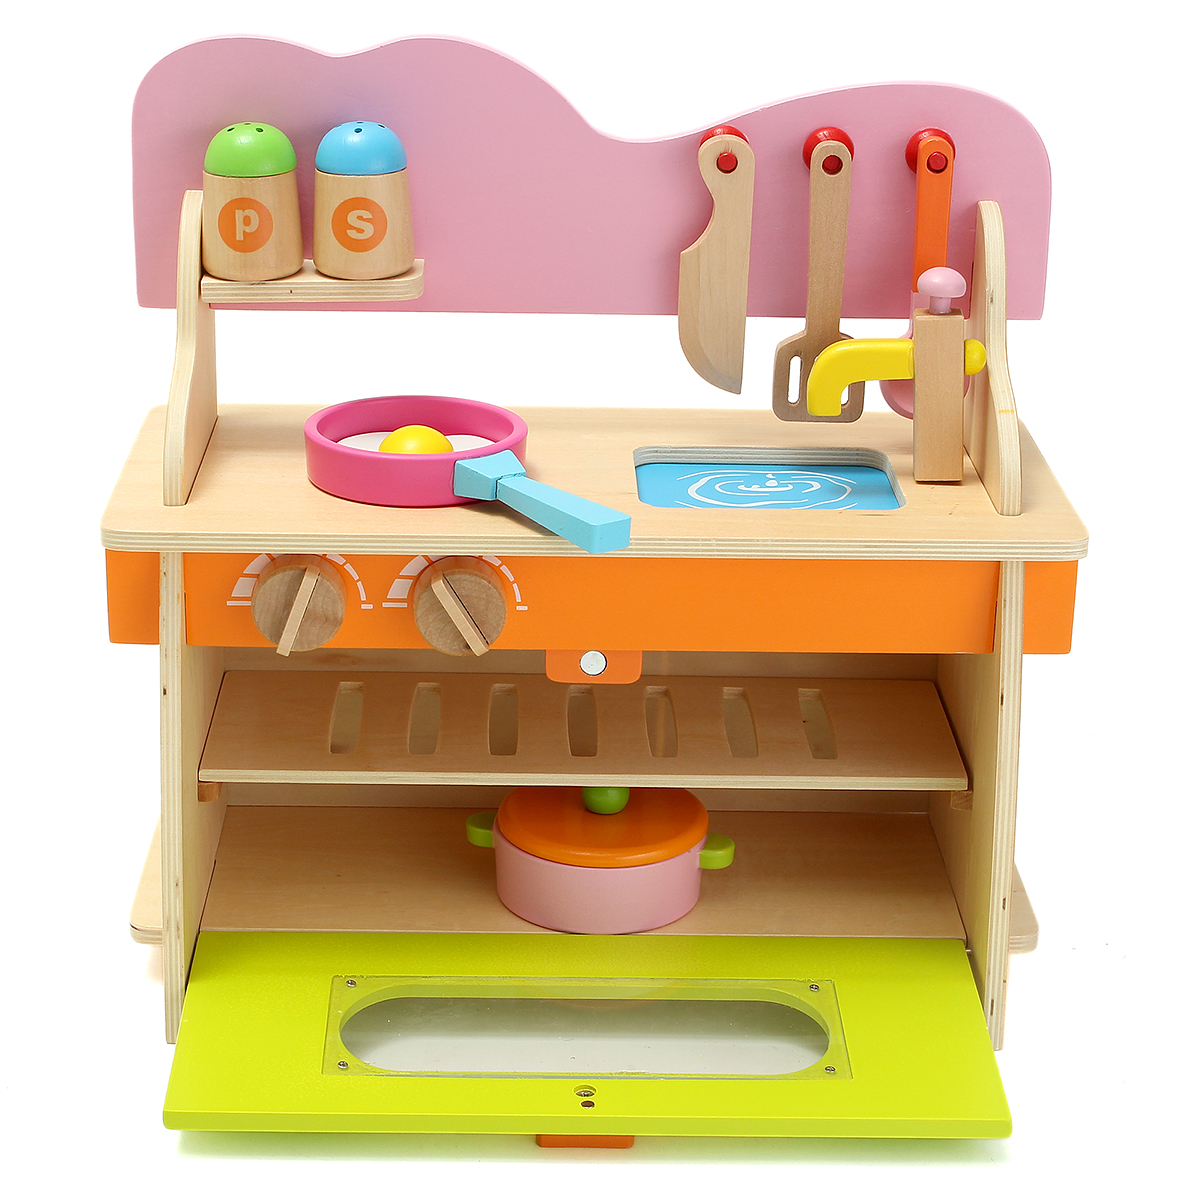 36*17*36cm Colorful Kitchen Wooden Wood Pretend Gas Stove Toy Model Set For Kids Gifts Home